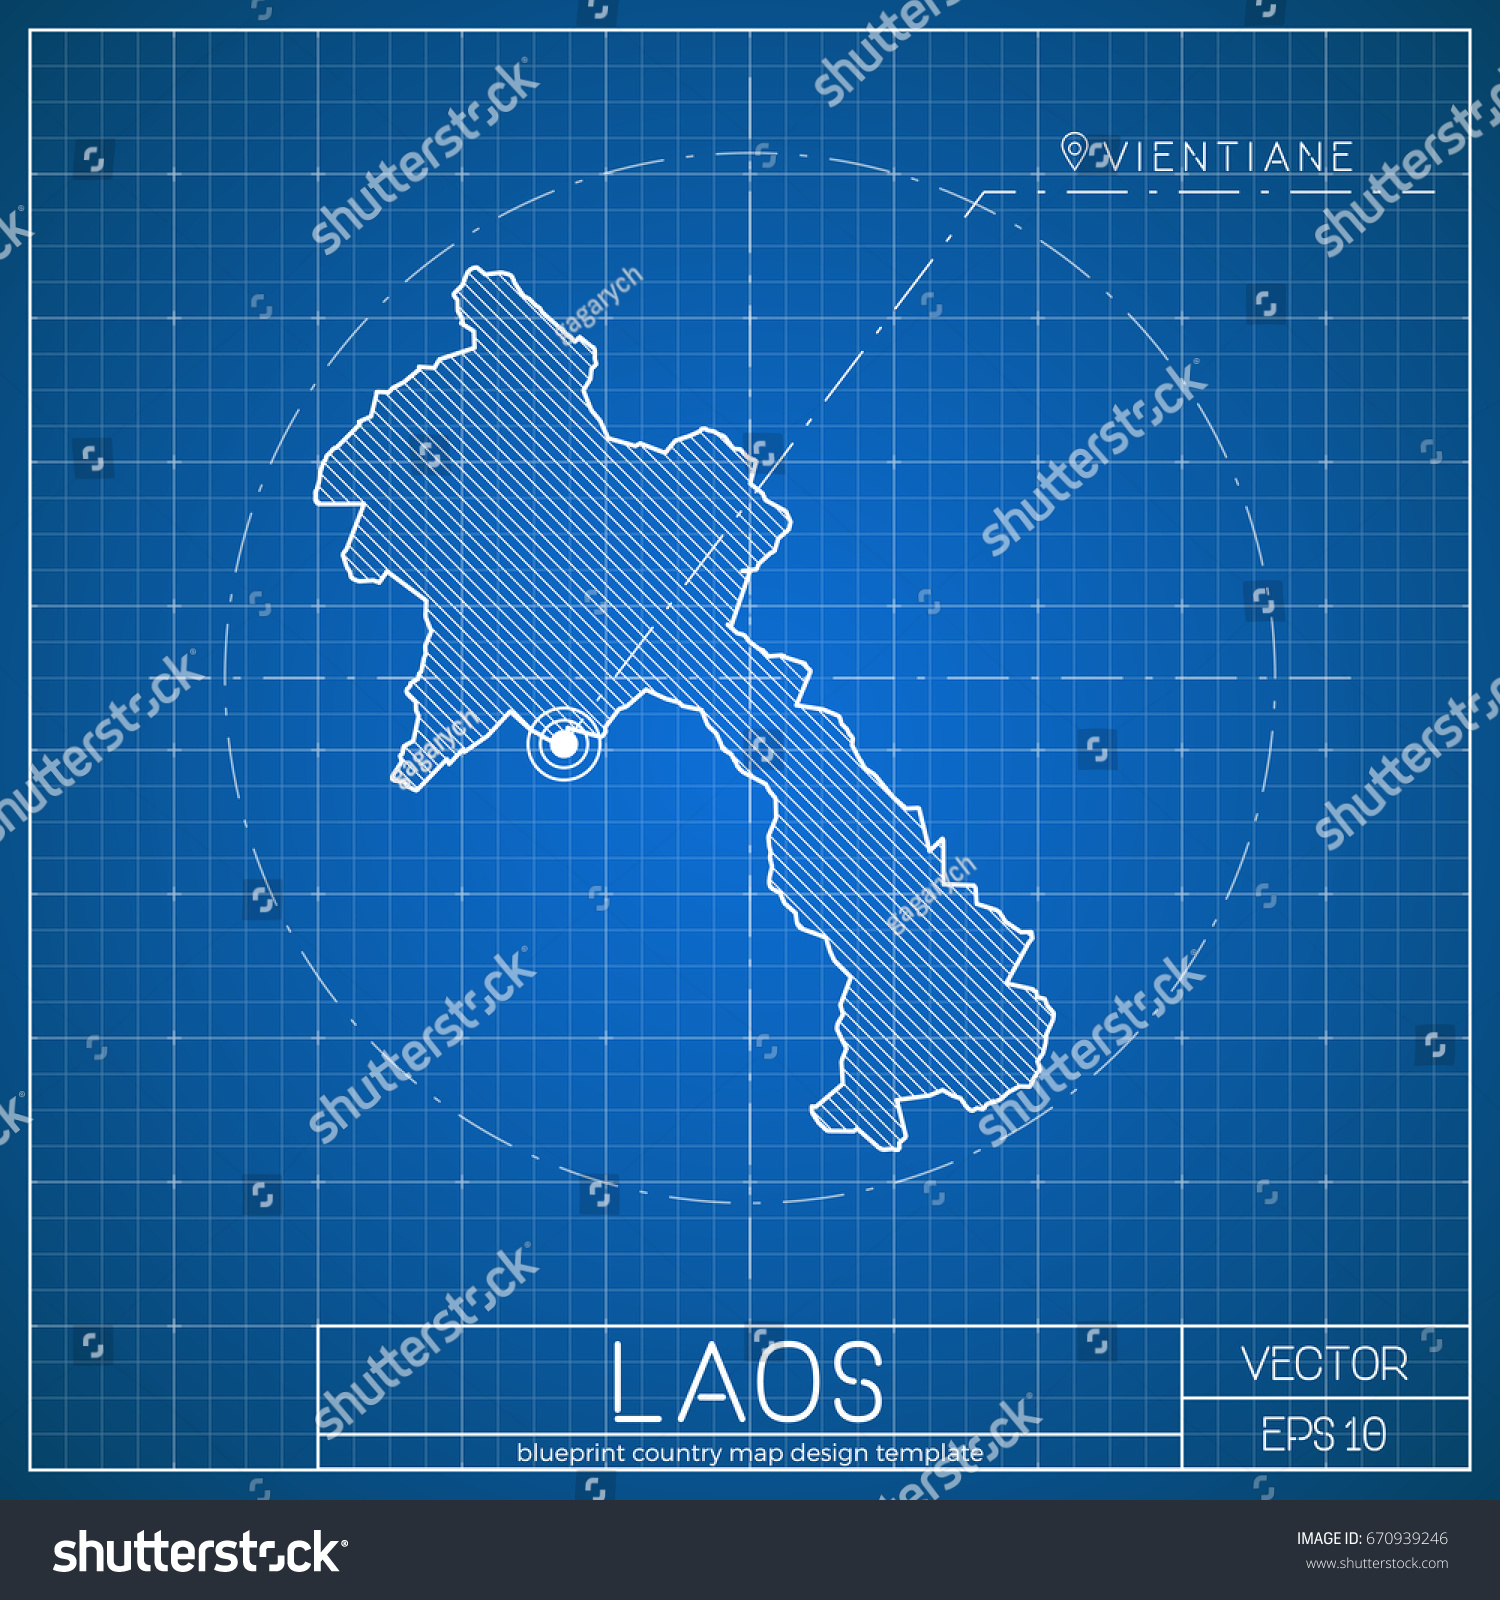 Laos blueprint map template capital city stock vector 670939246 laos blueprint map template with capital city vector illustration malvernweather Image collections